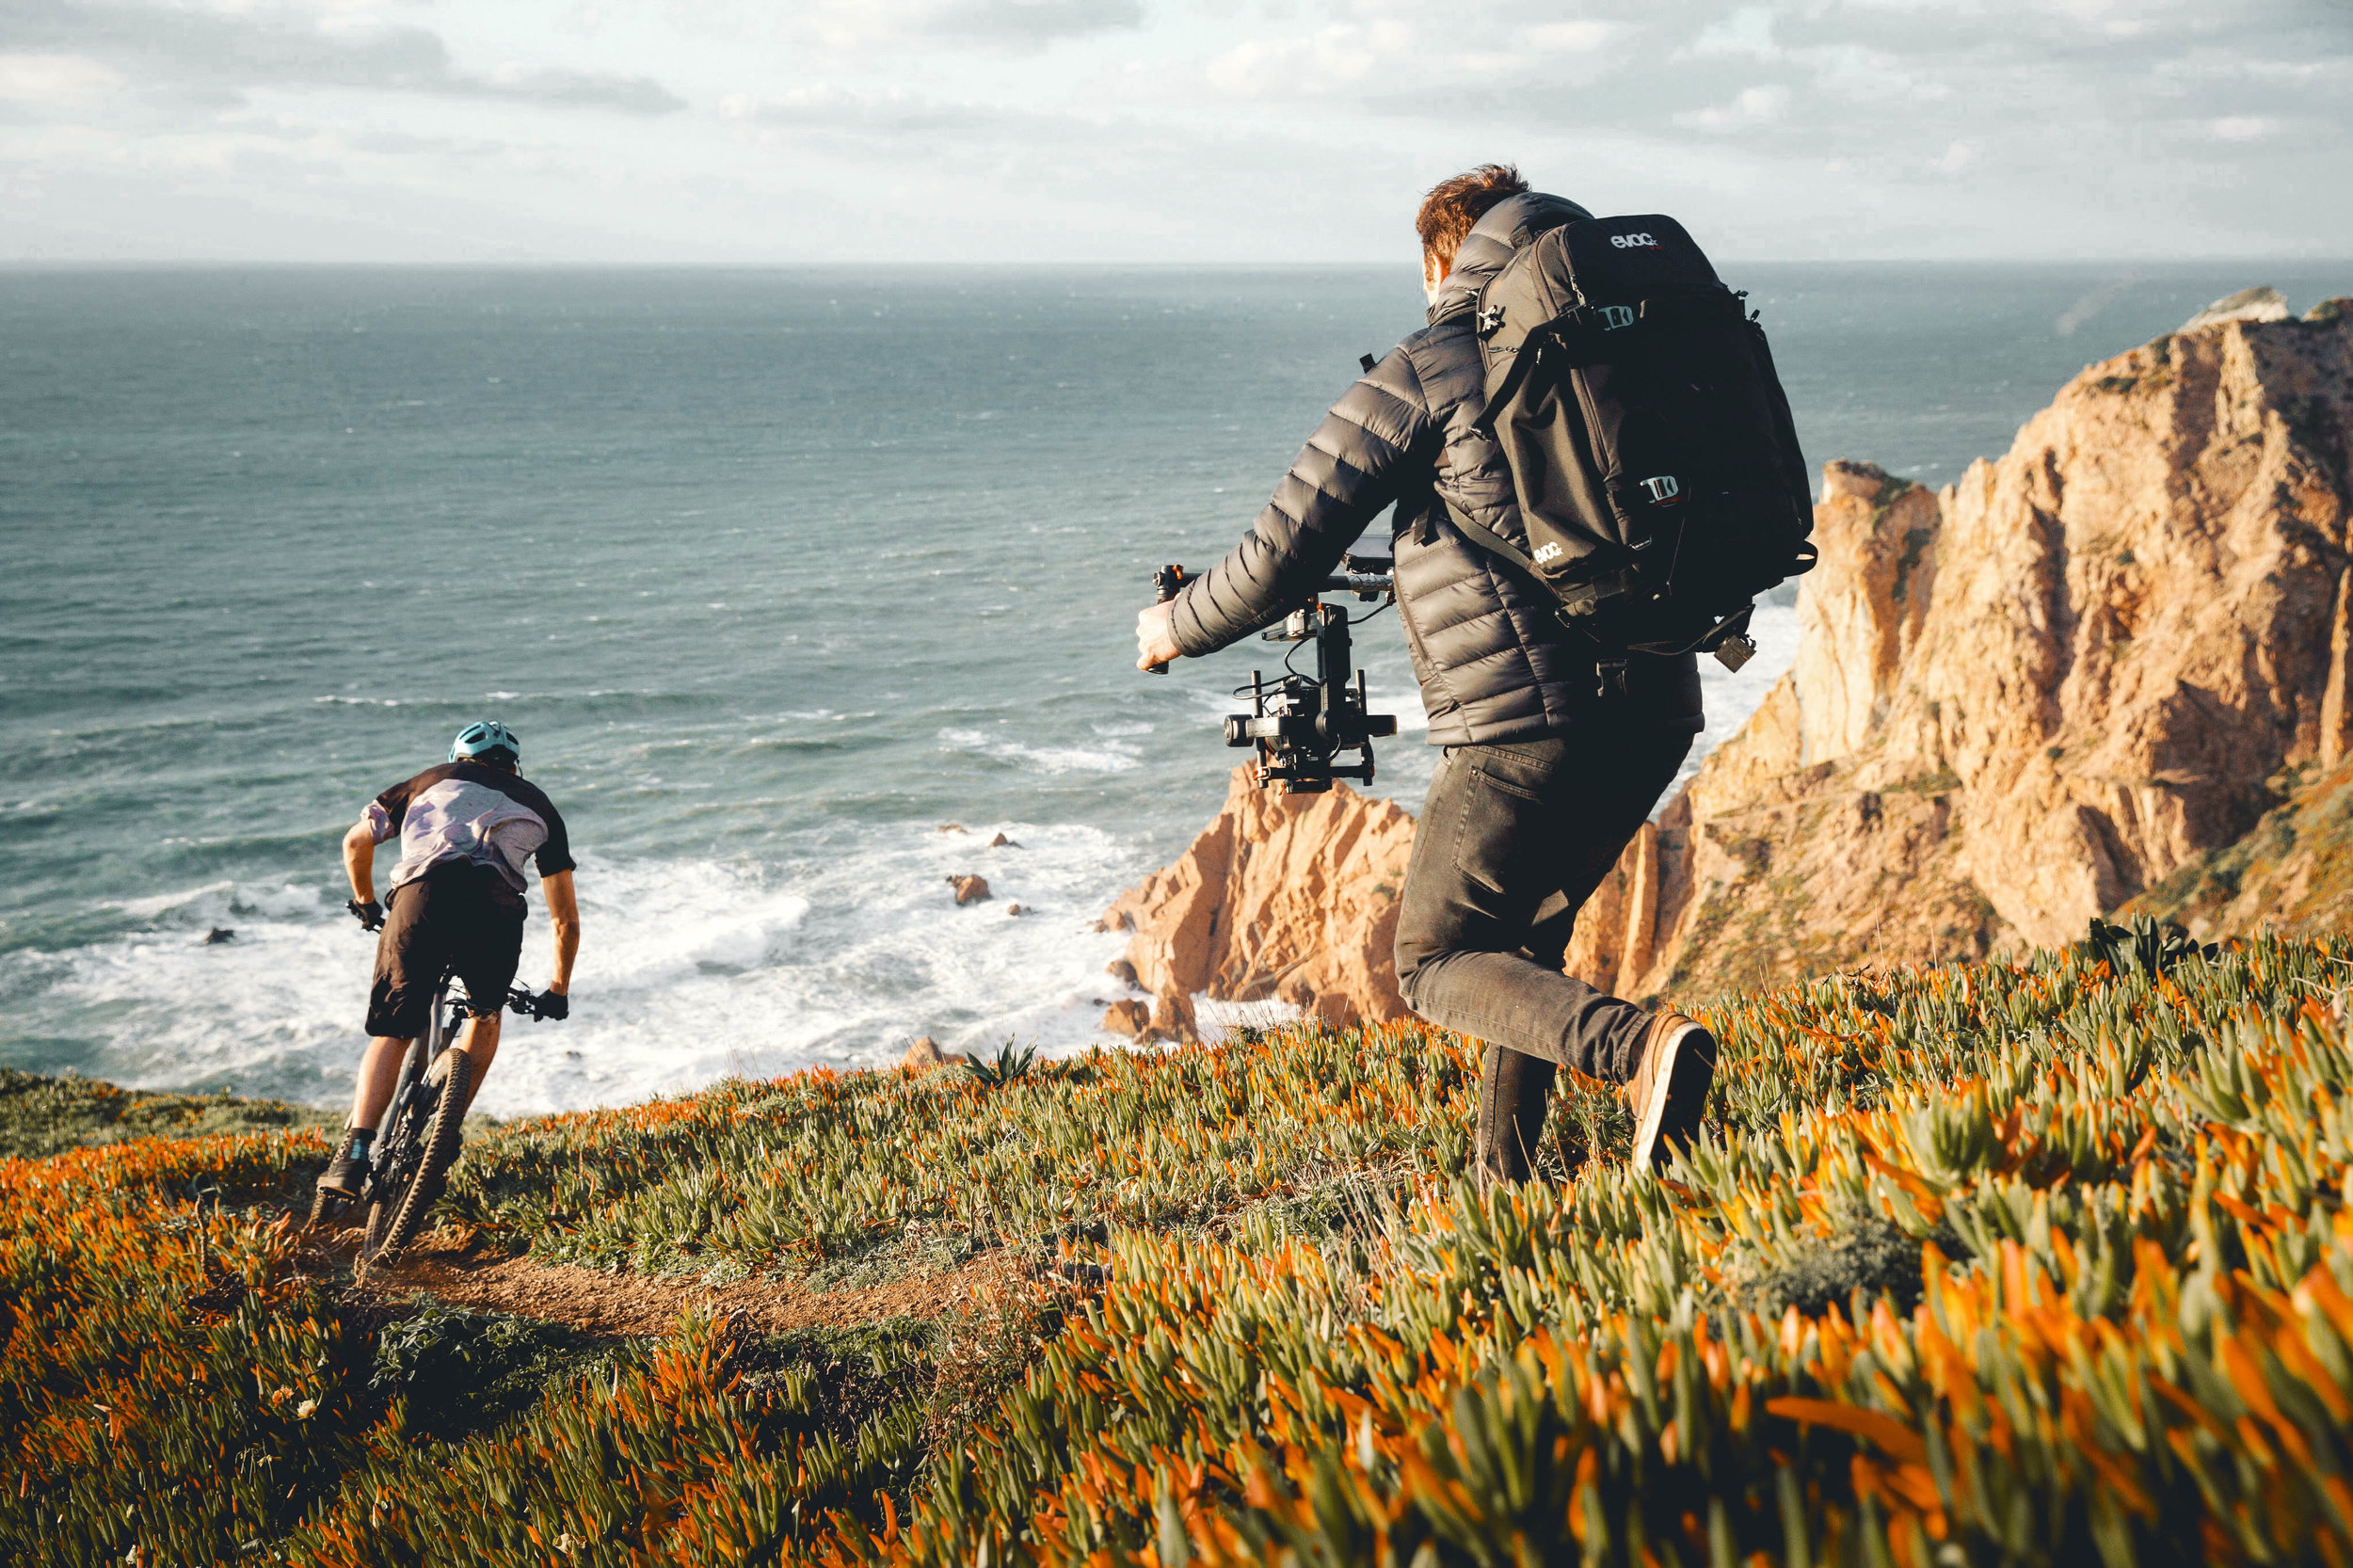 algarve, portugal - shooting for Giant Bicycles